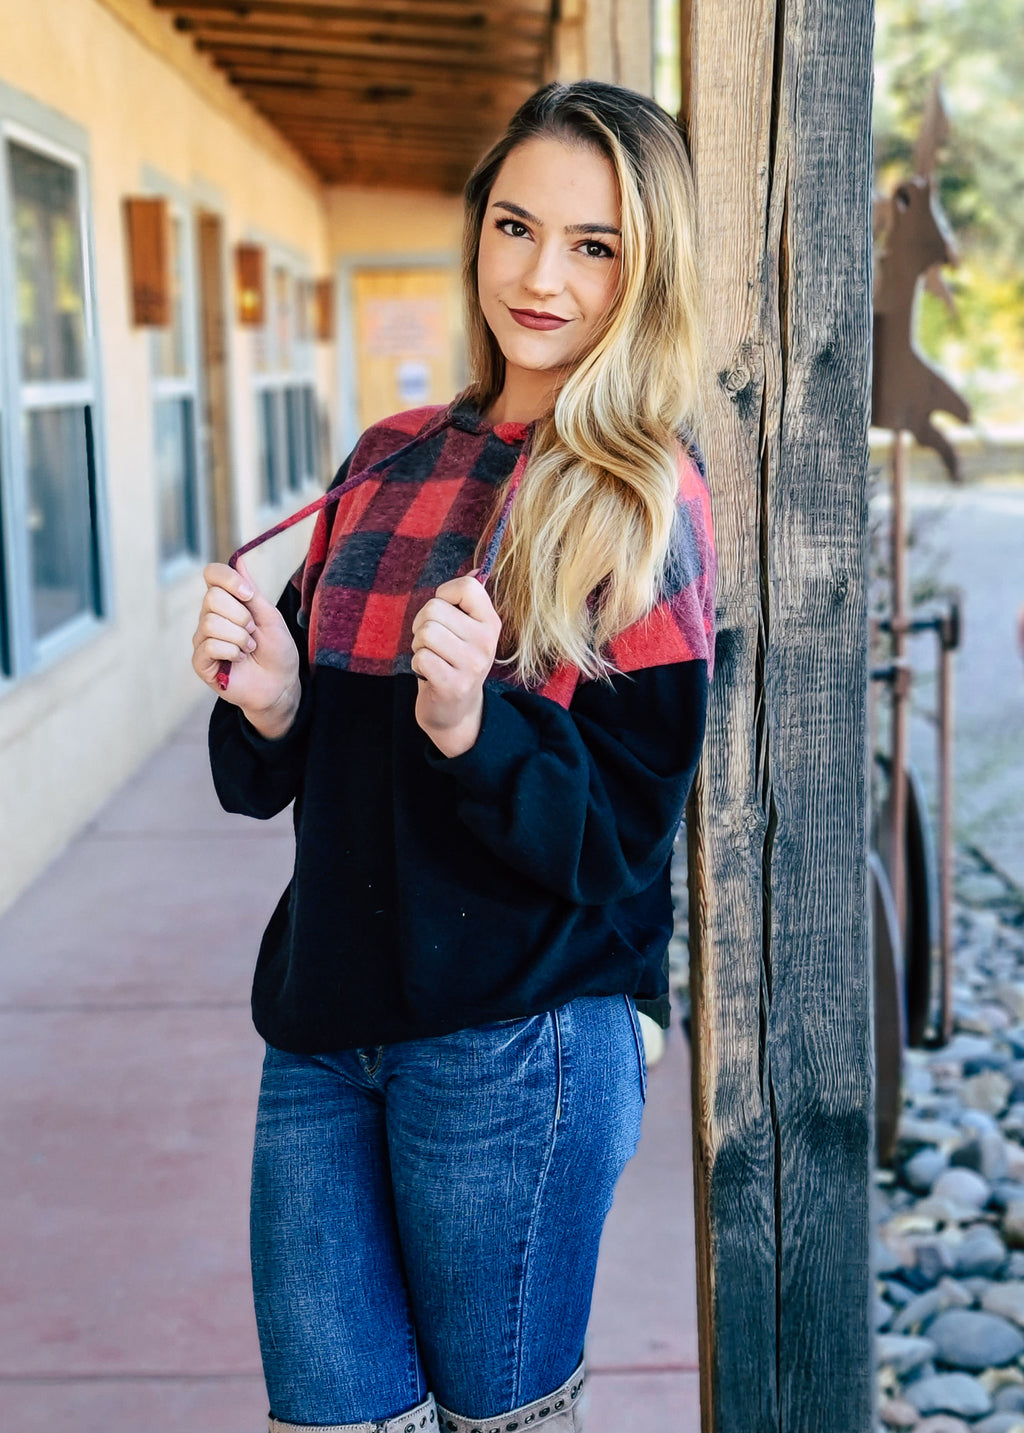 Red & Black Plaid Hoodie on blonde model